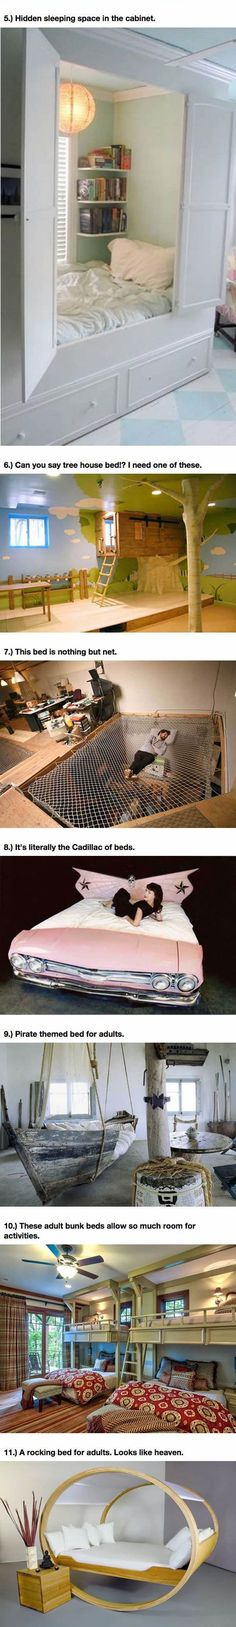 best bed designs